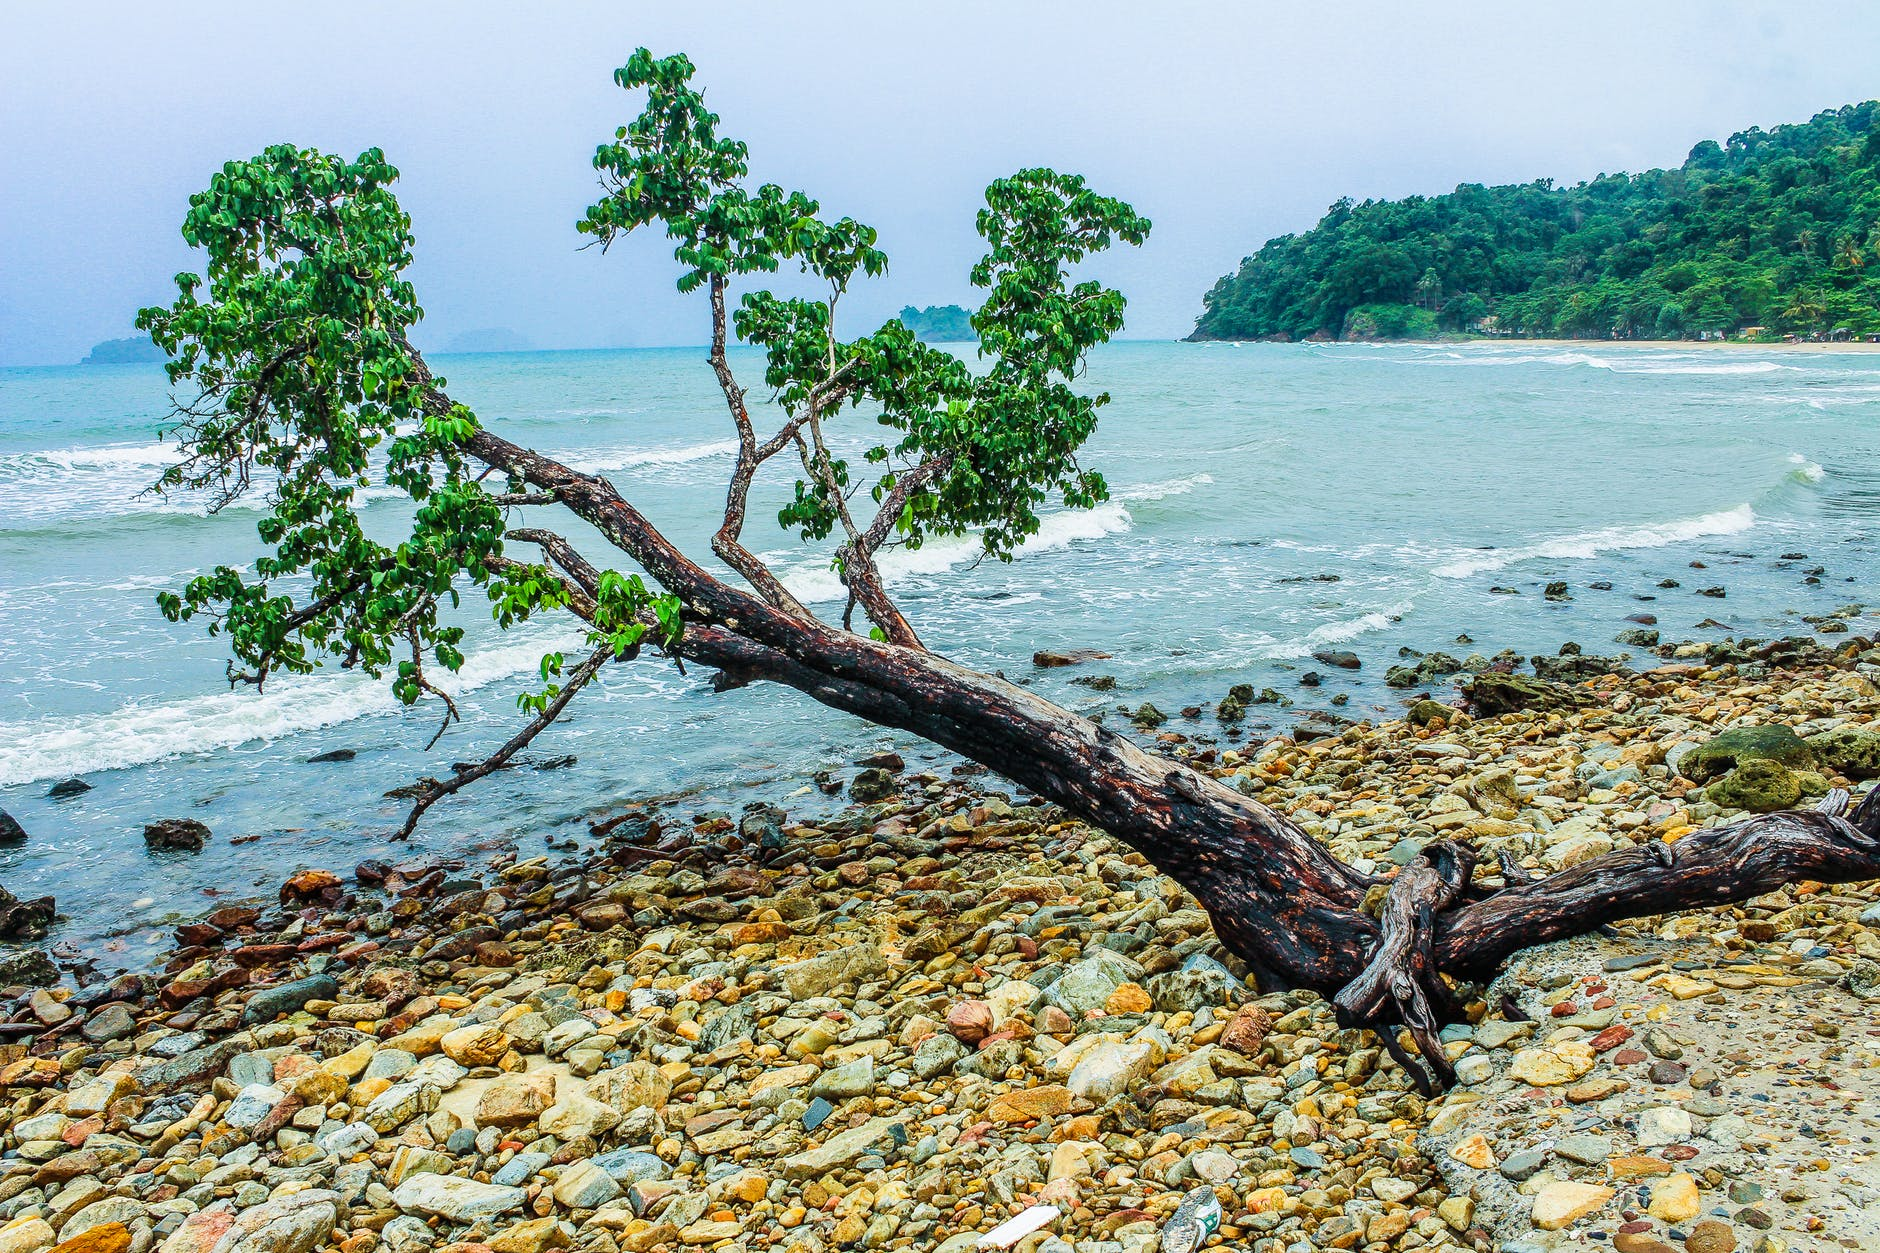 green tree beside seashore near green mountain